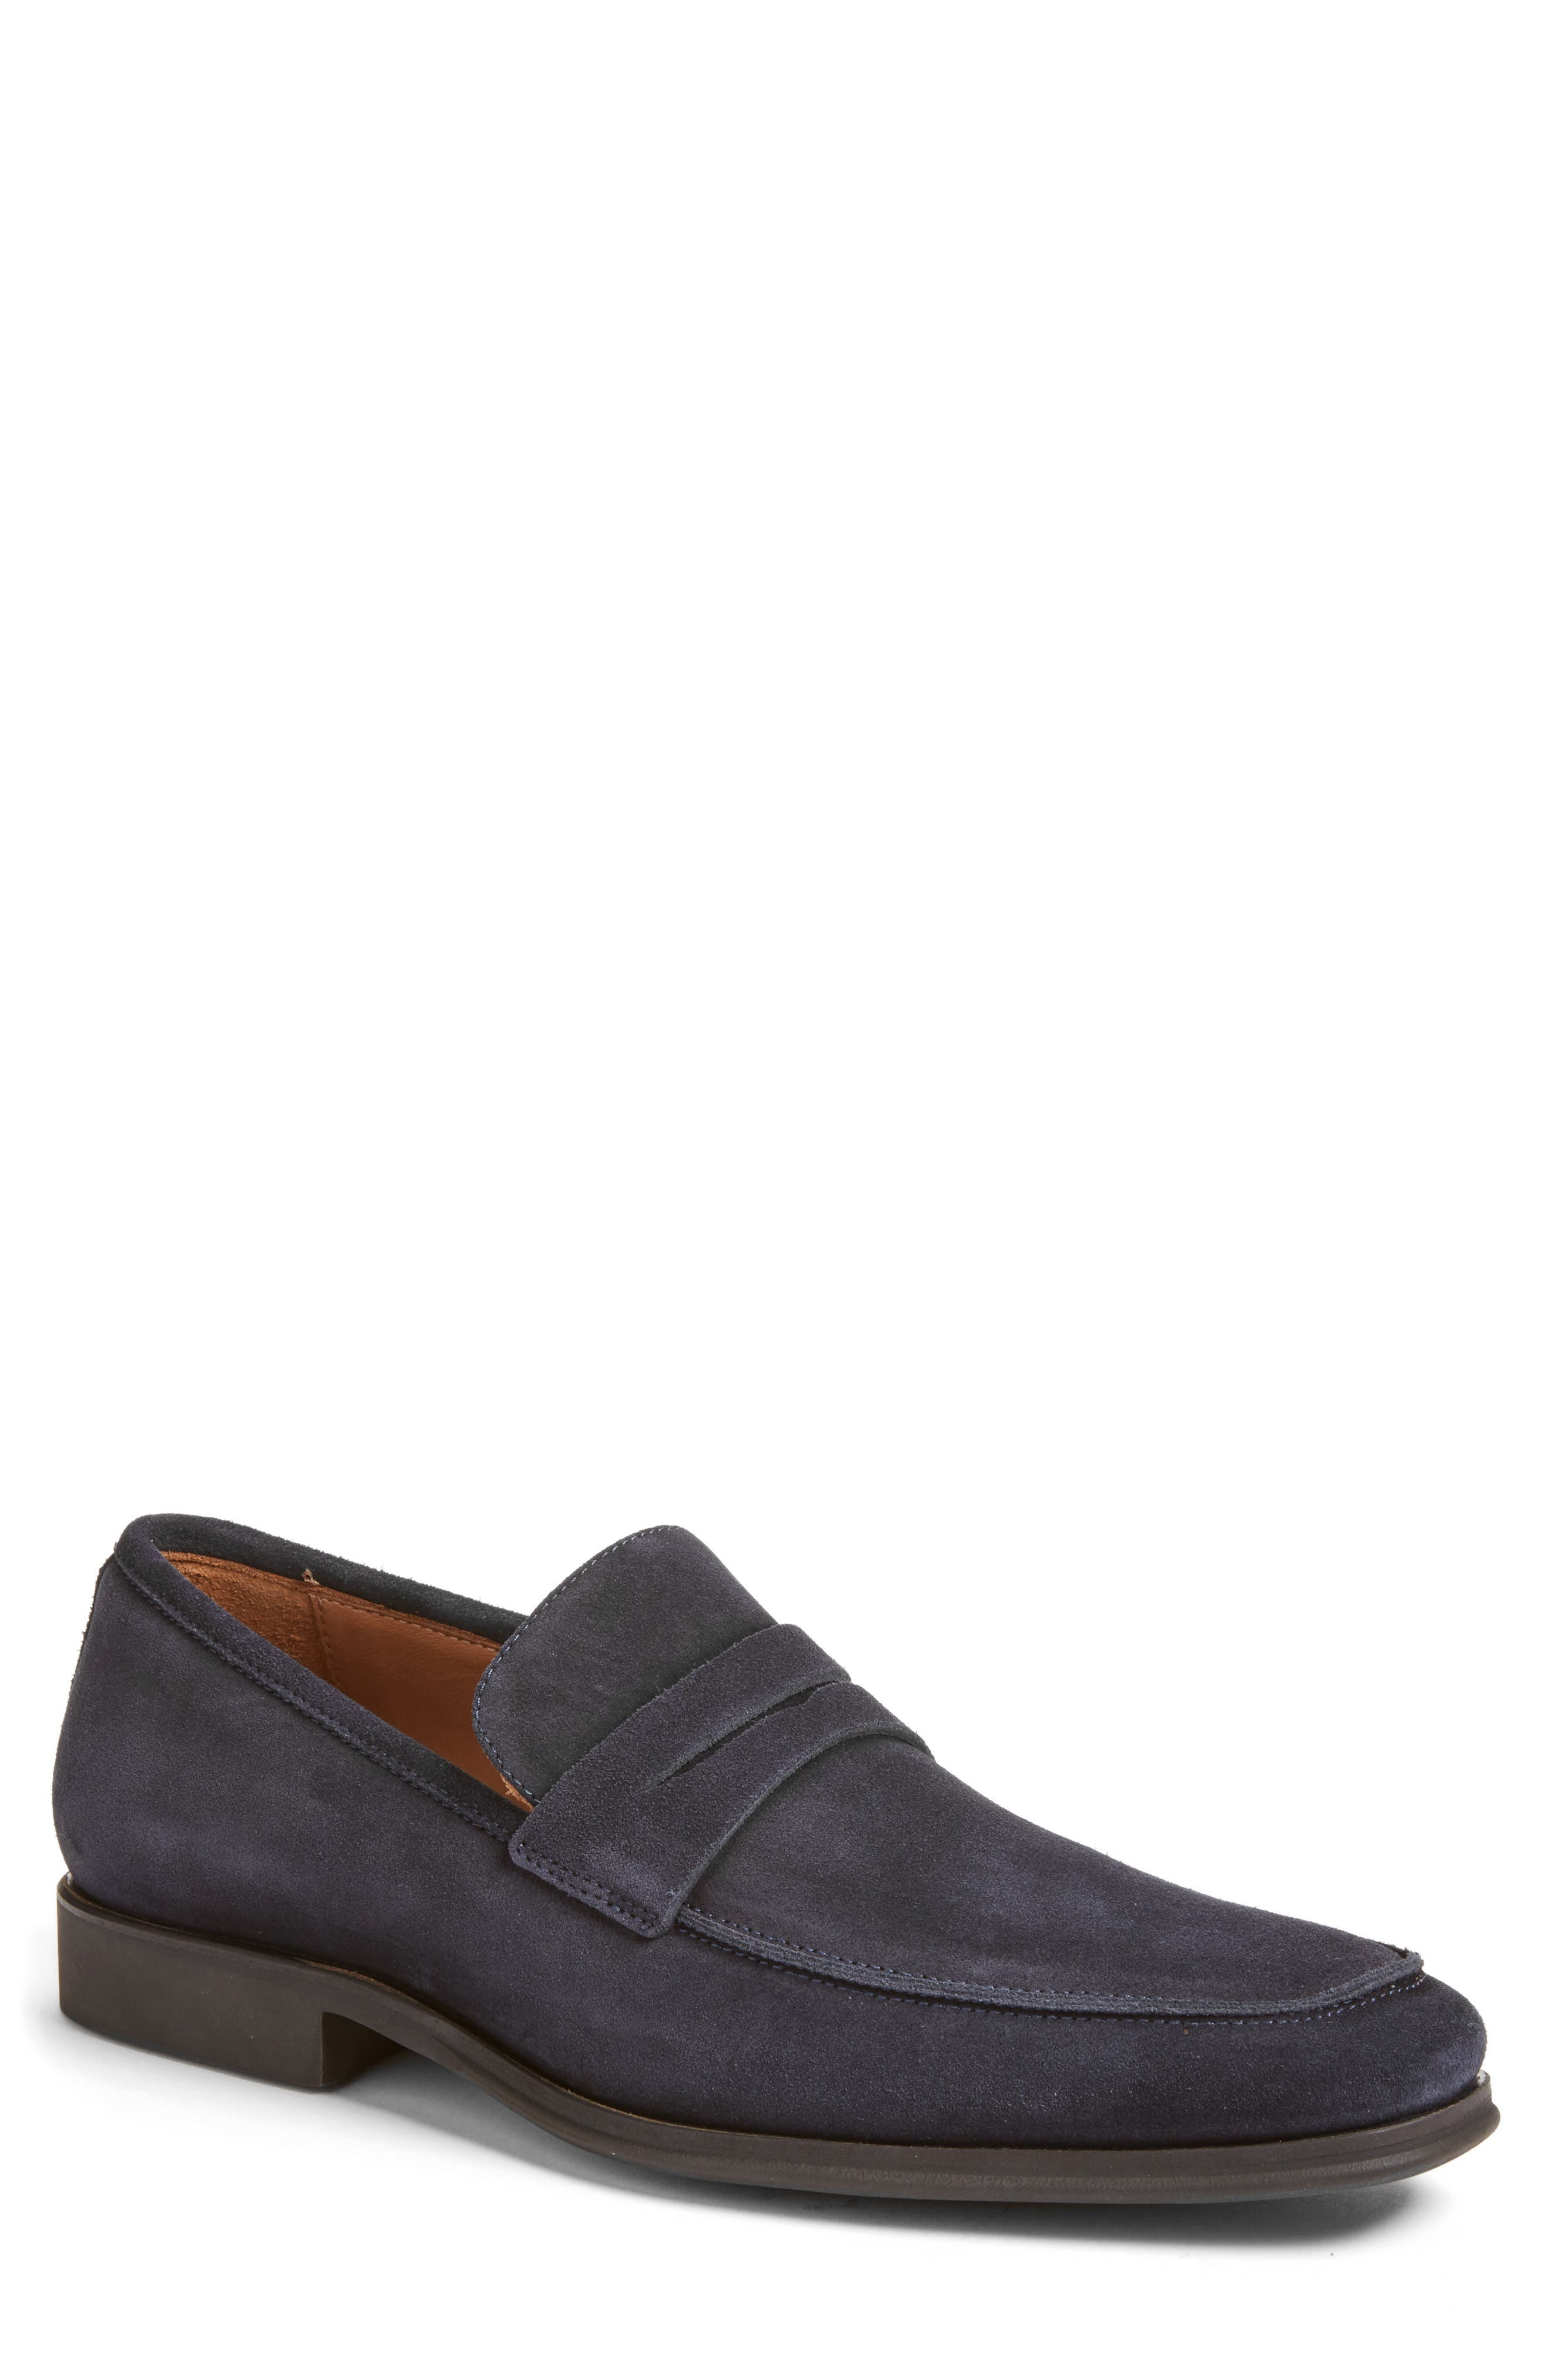 Ragusa Penny Loafer,                             Main thumbnail 3, color,